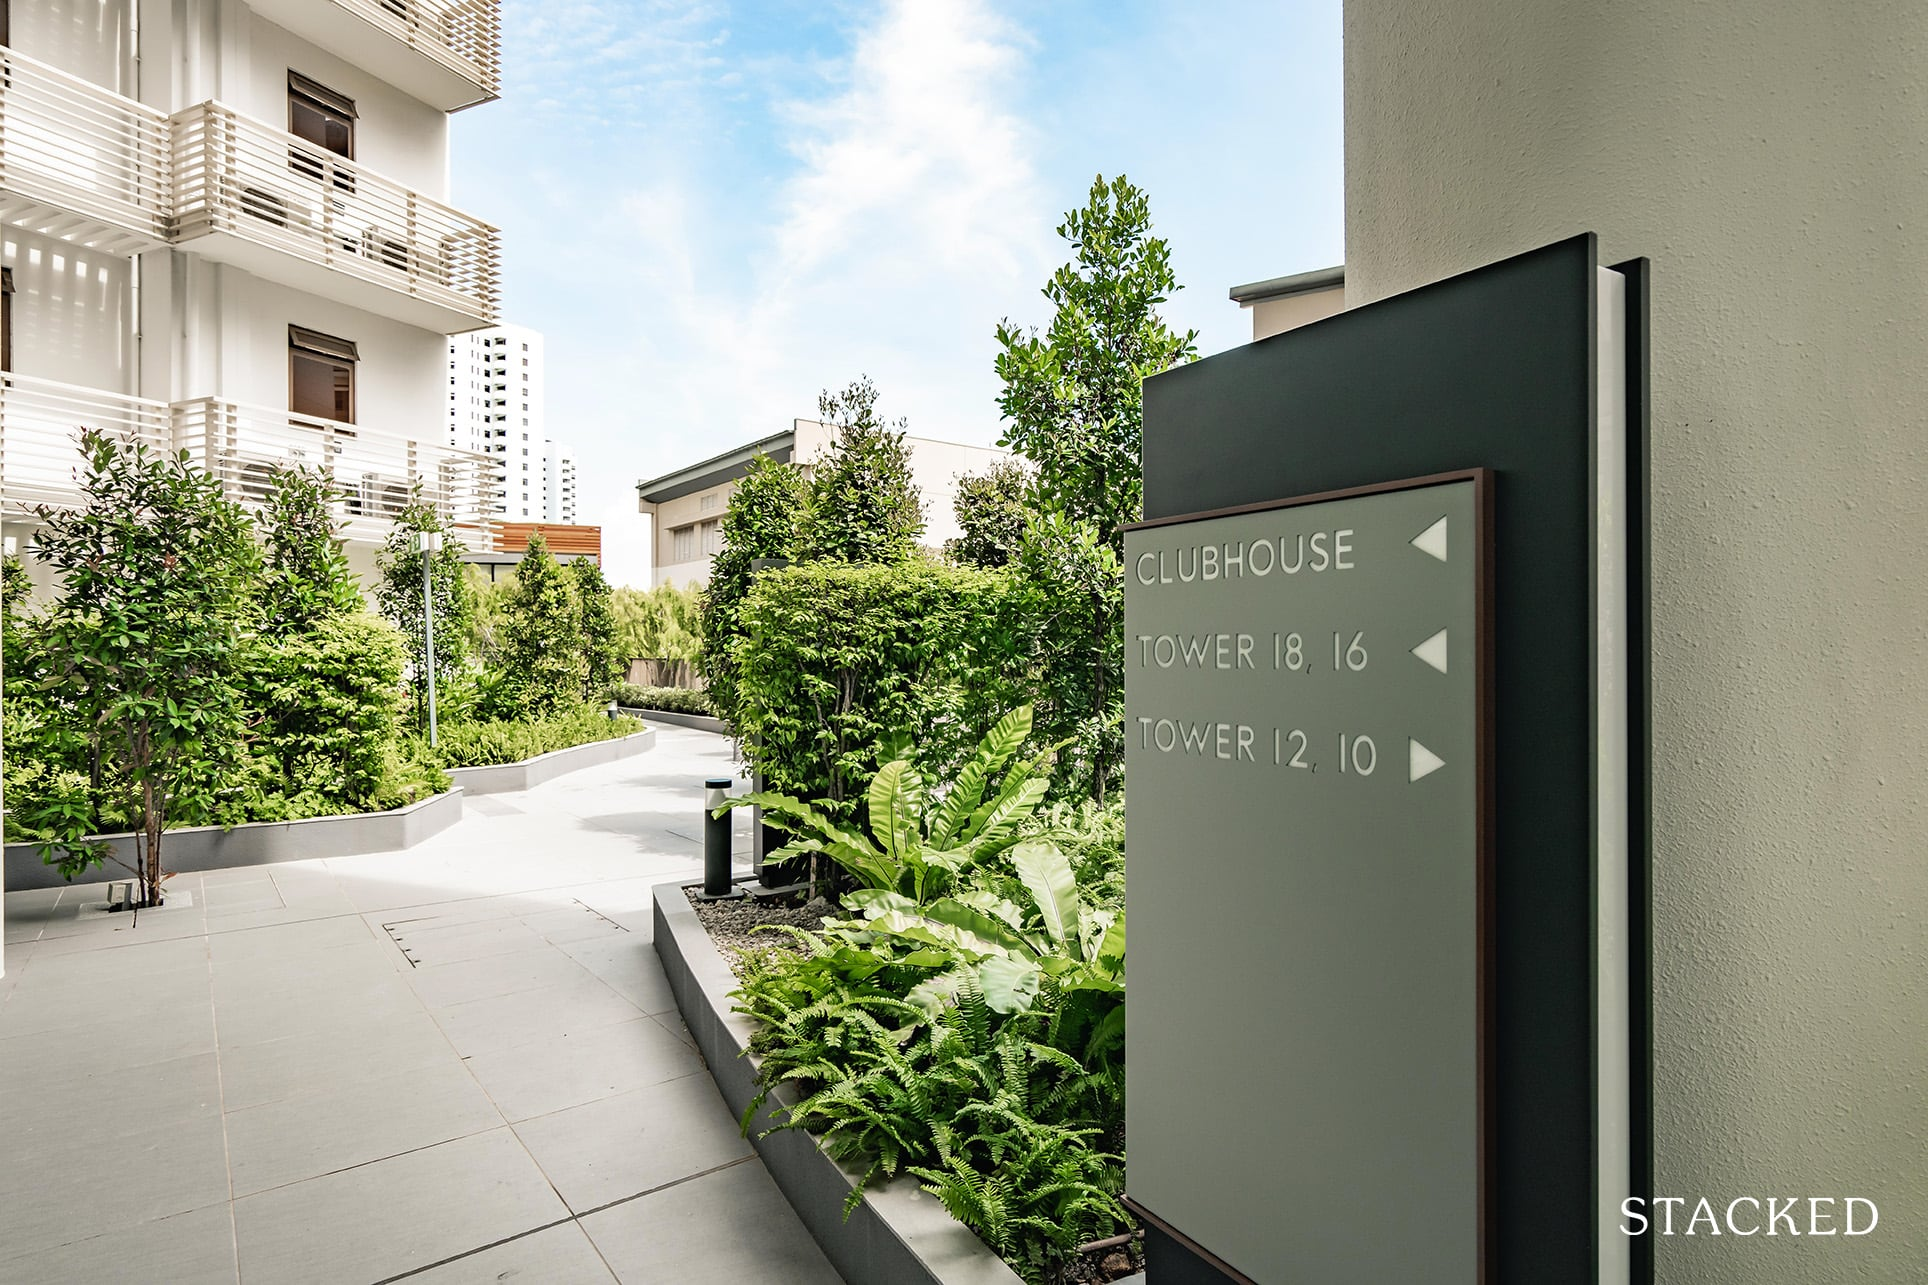 seaside residences clubhouse sign